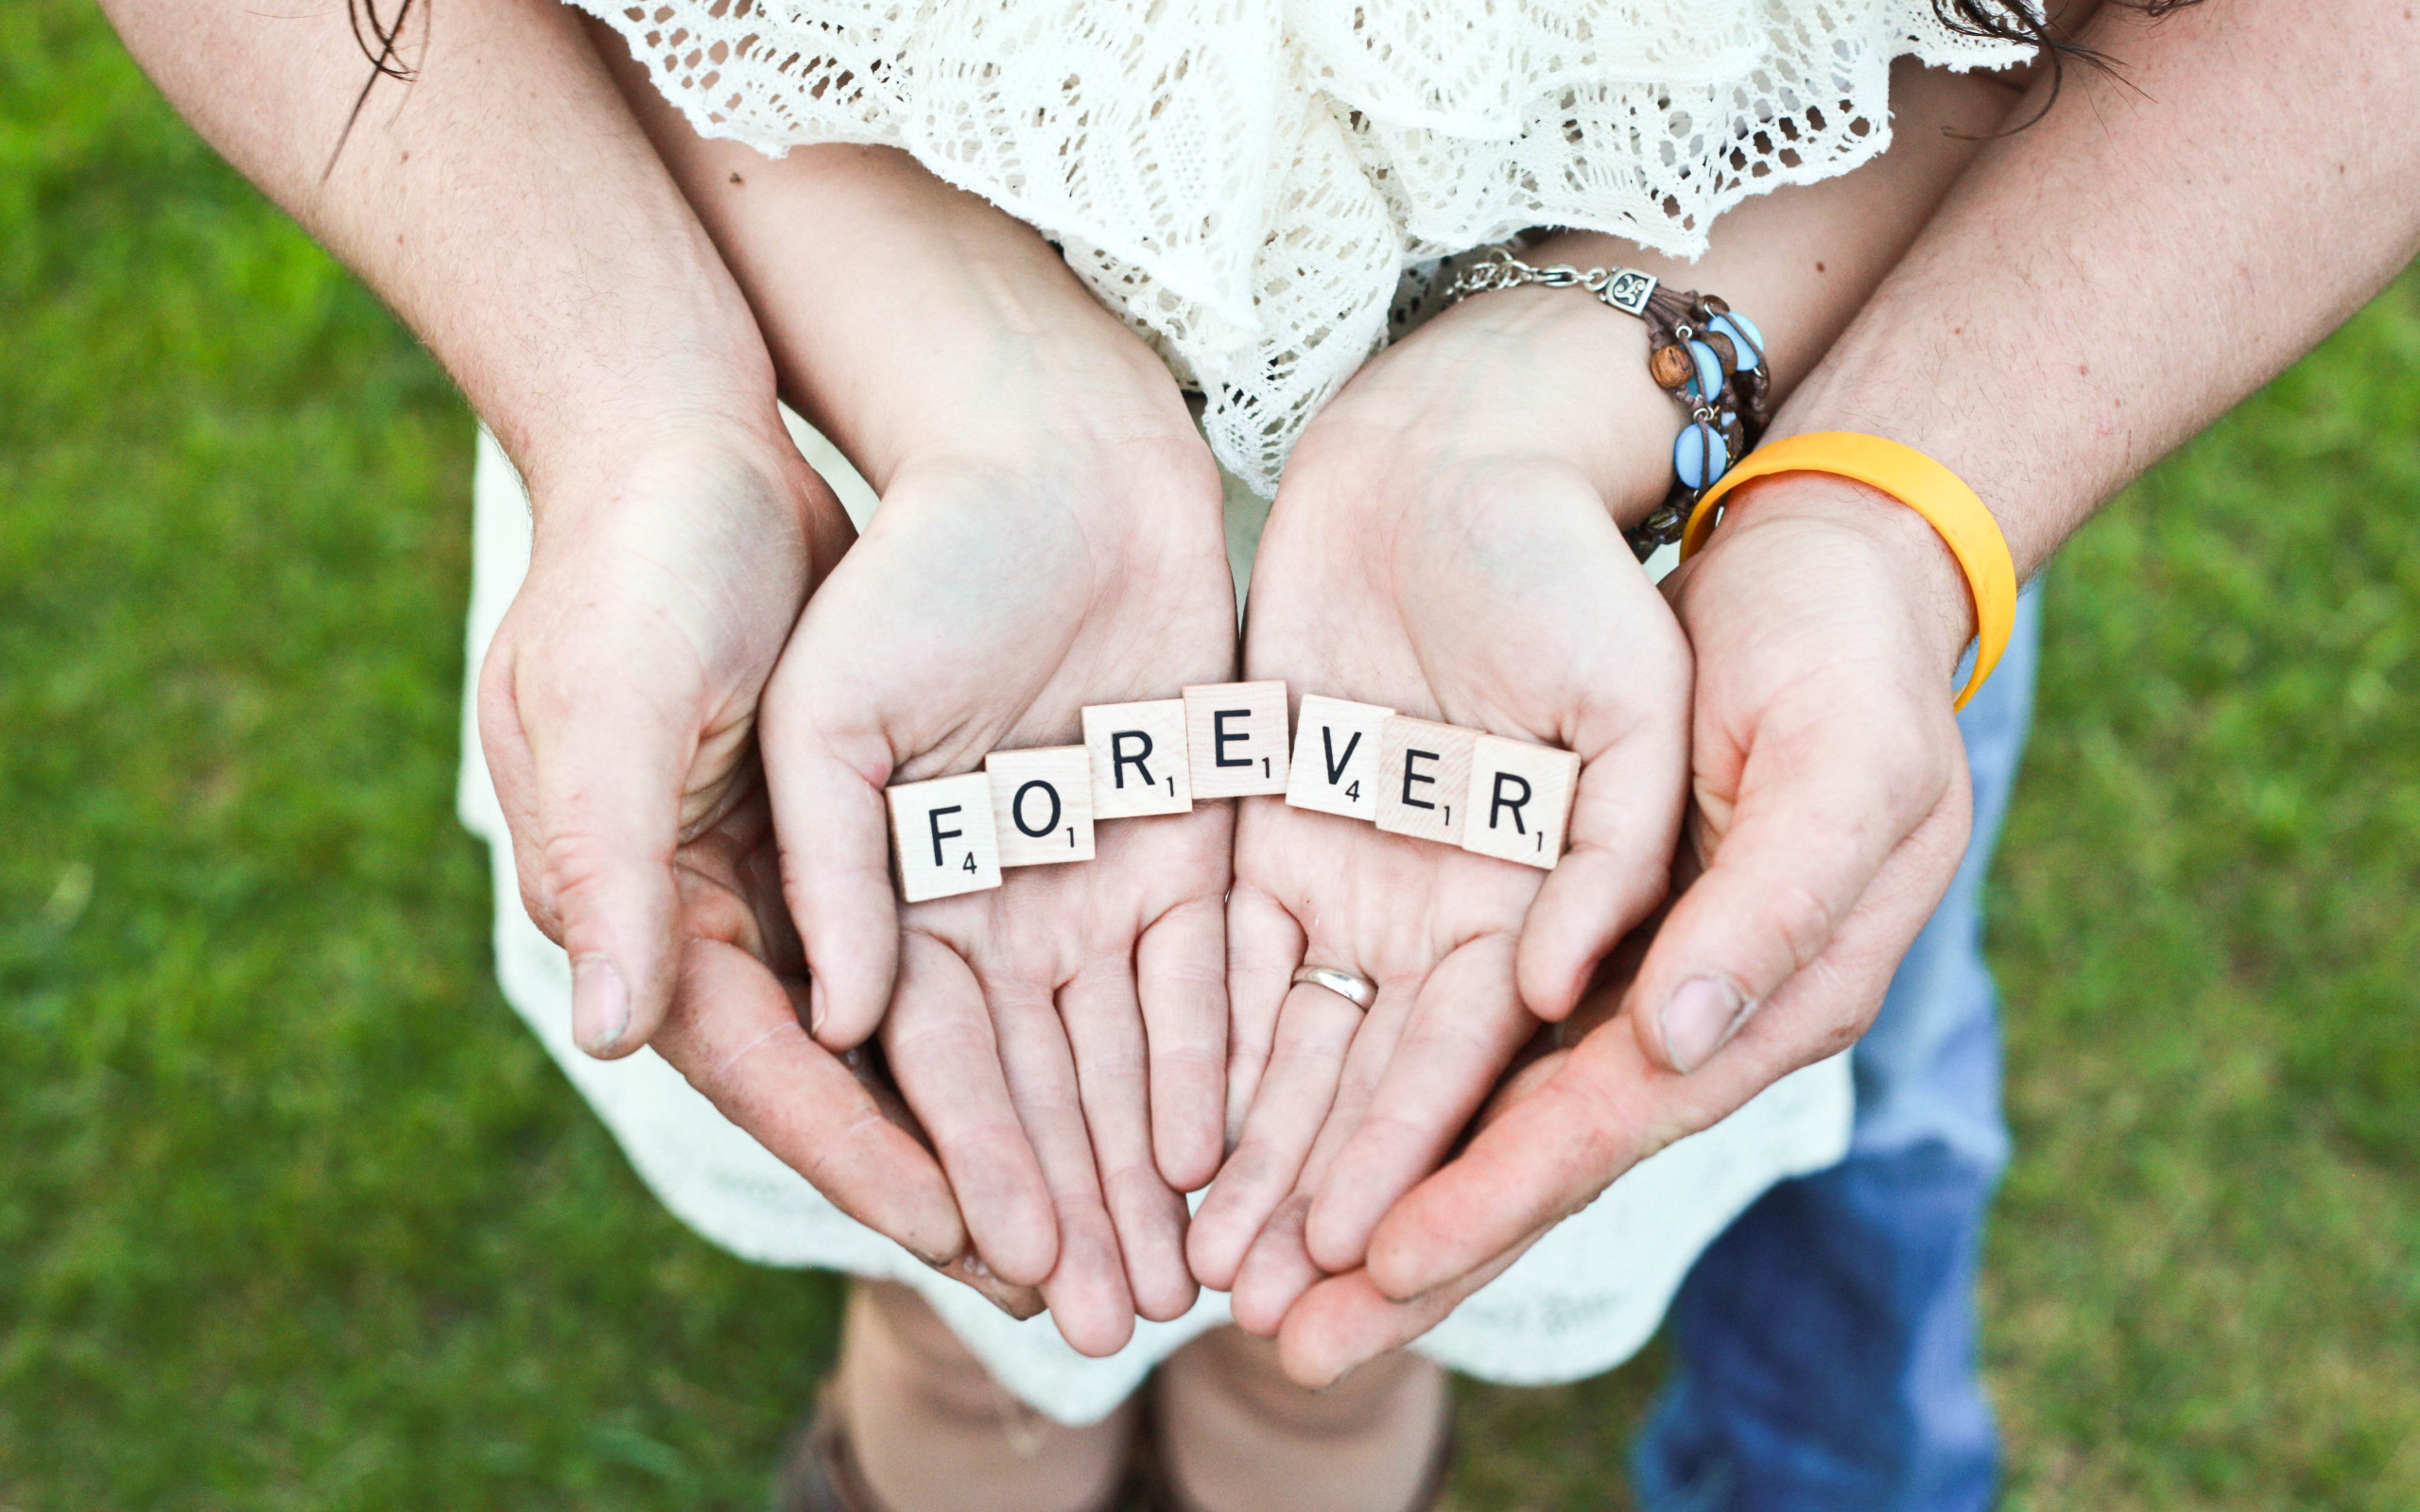 Forever message in their hands | 2560x1600 wallpaper